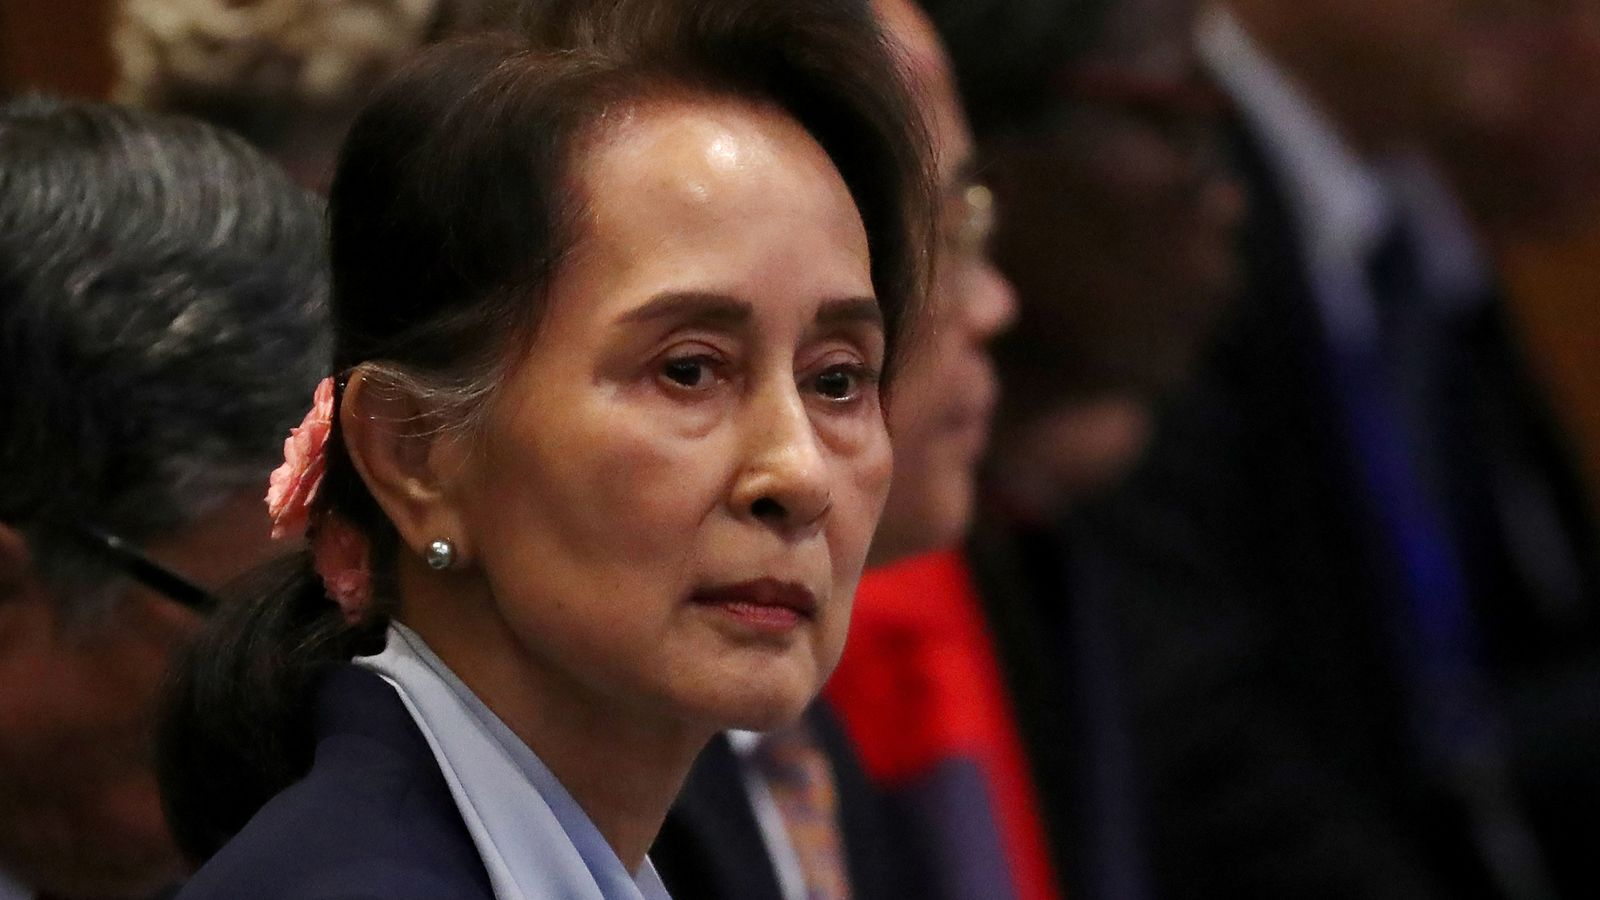 Aung San Suu Kyi: 'No tolerance' for human rights violations against Rohingya - EpicNews